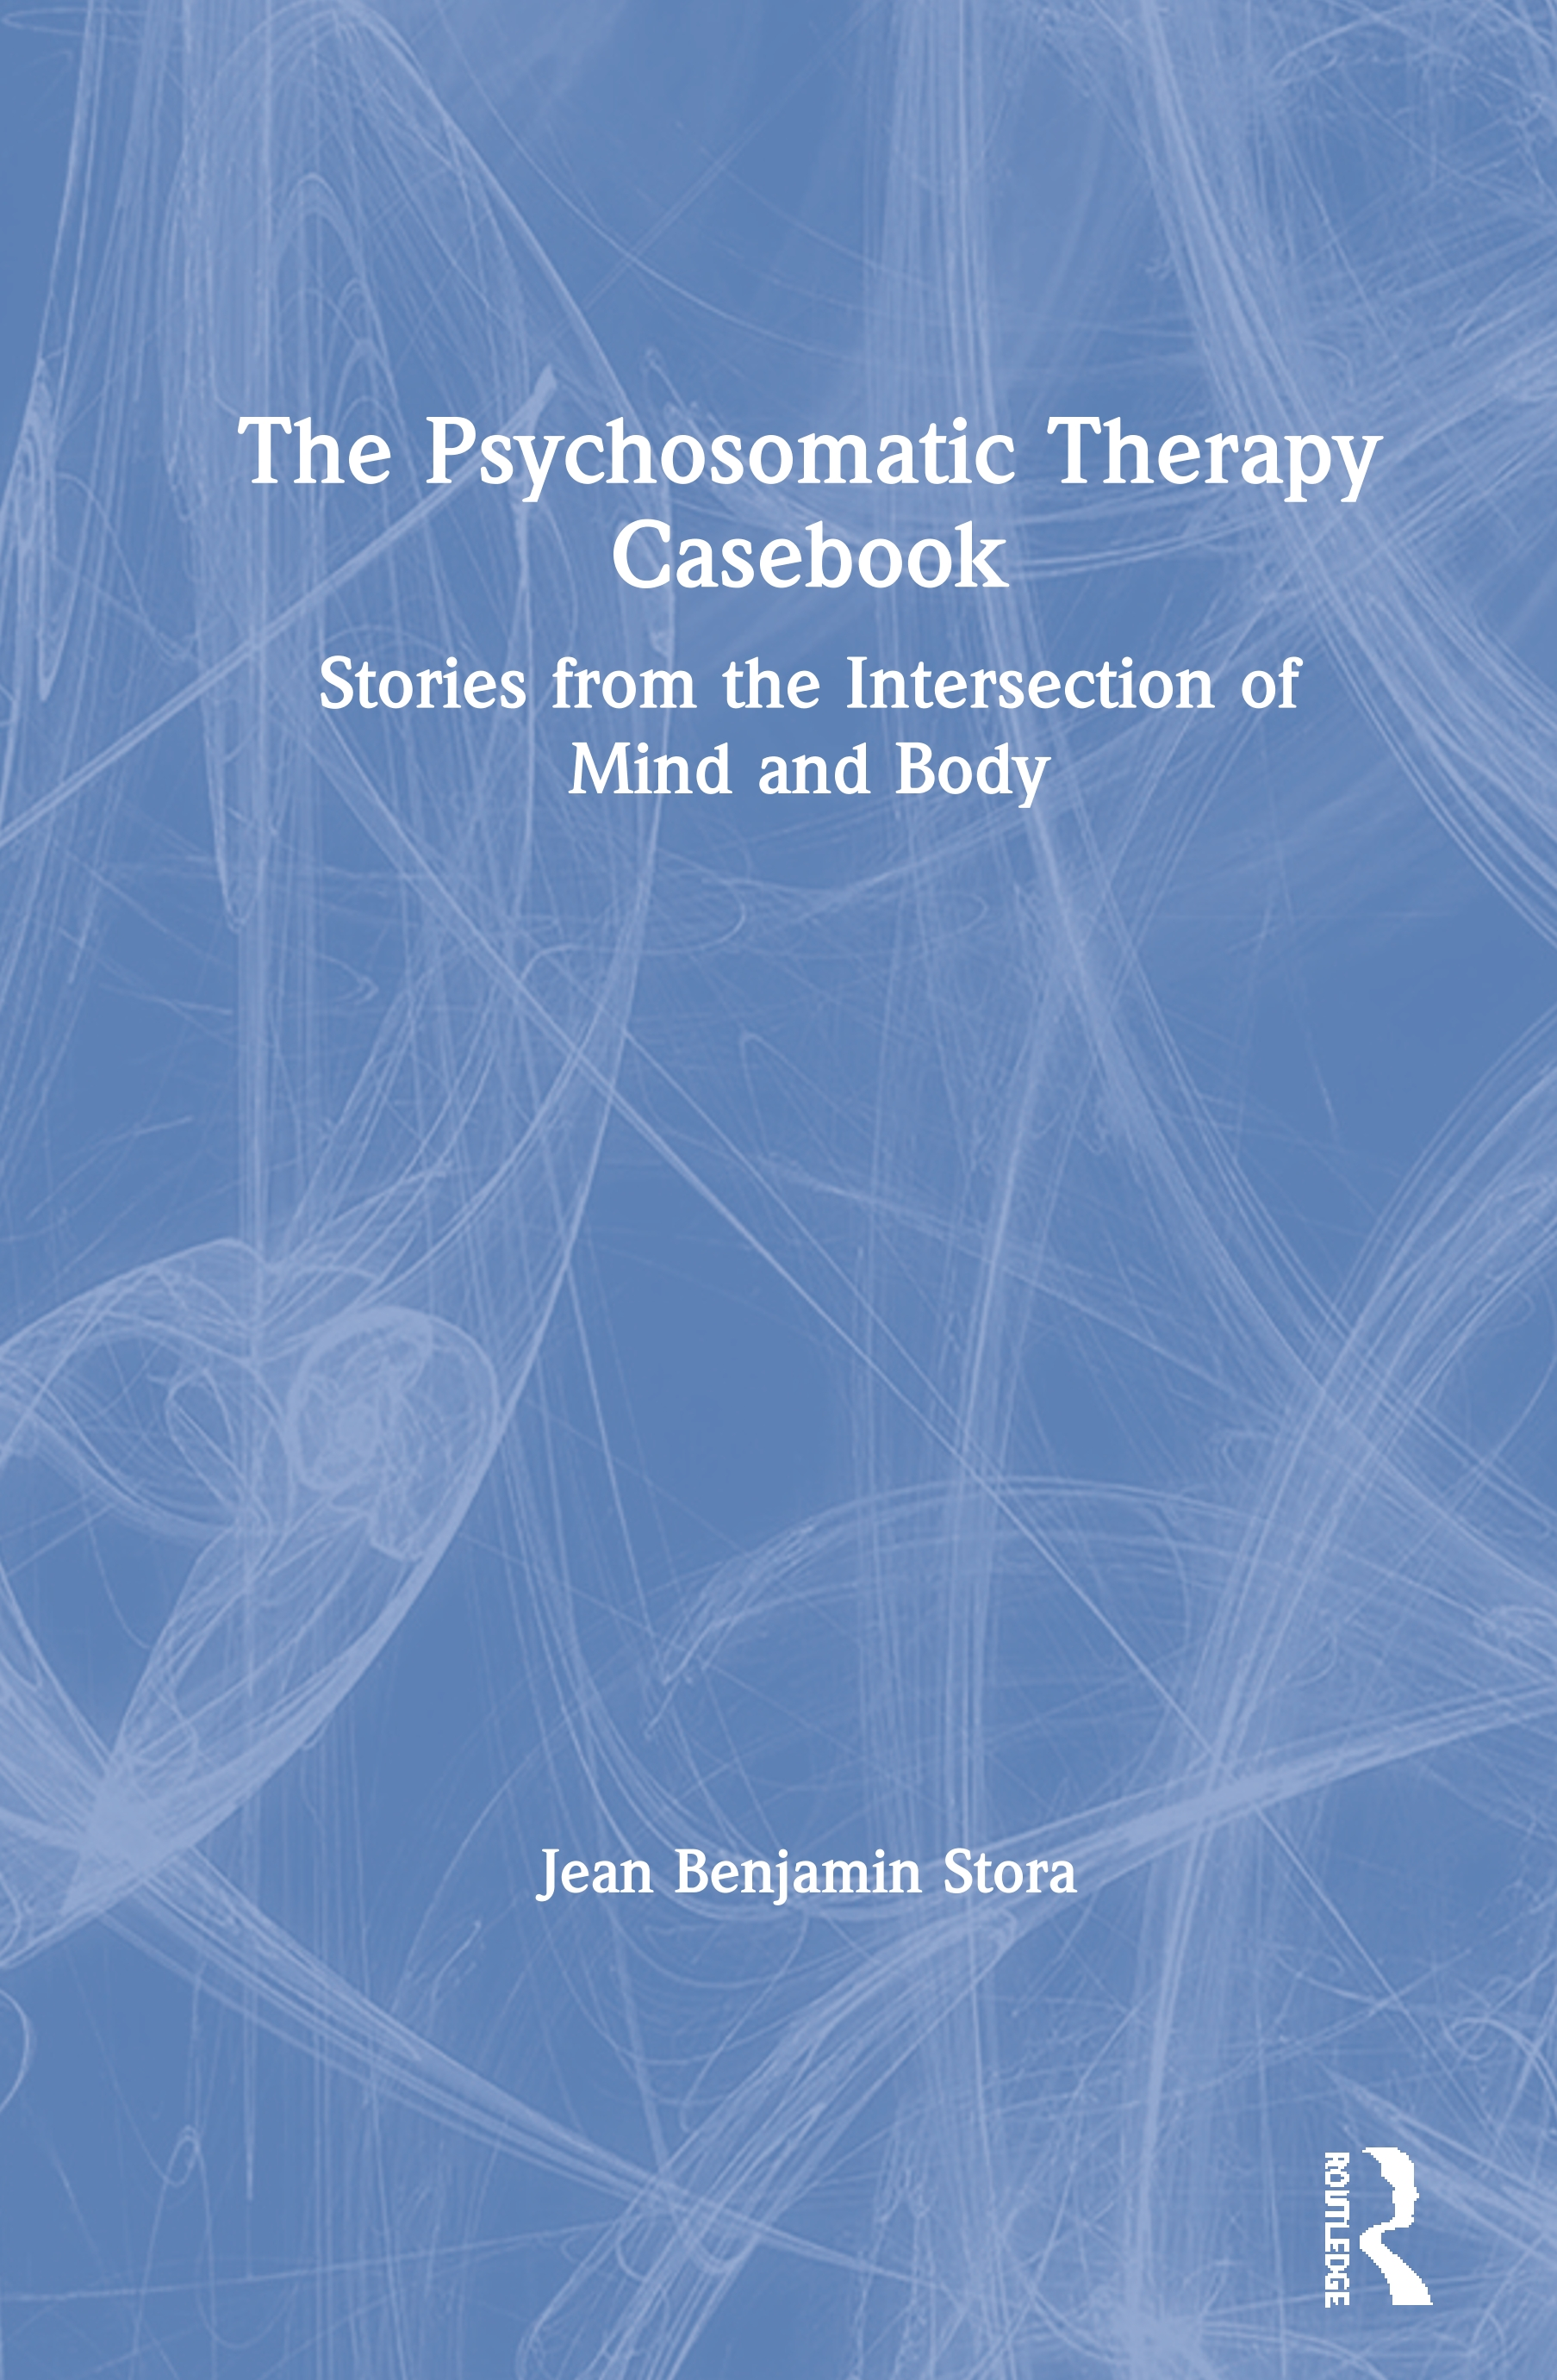 The Psychosomatic Therapy Casebook: Stories from the Intersection of Mind and Body book cover